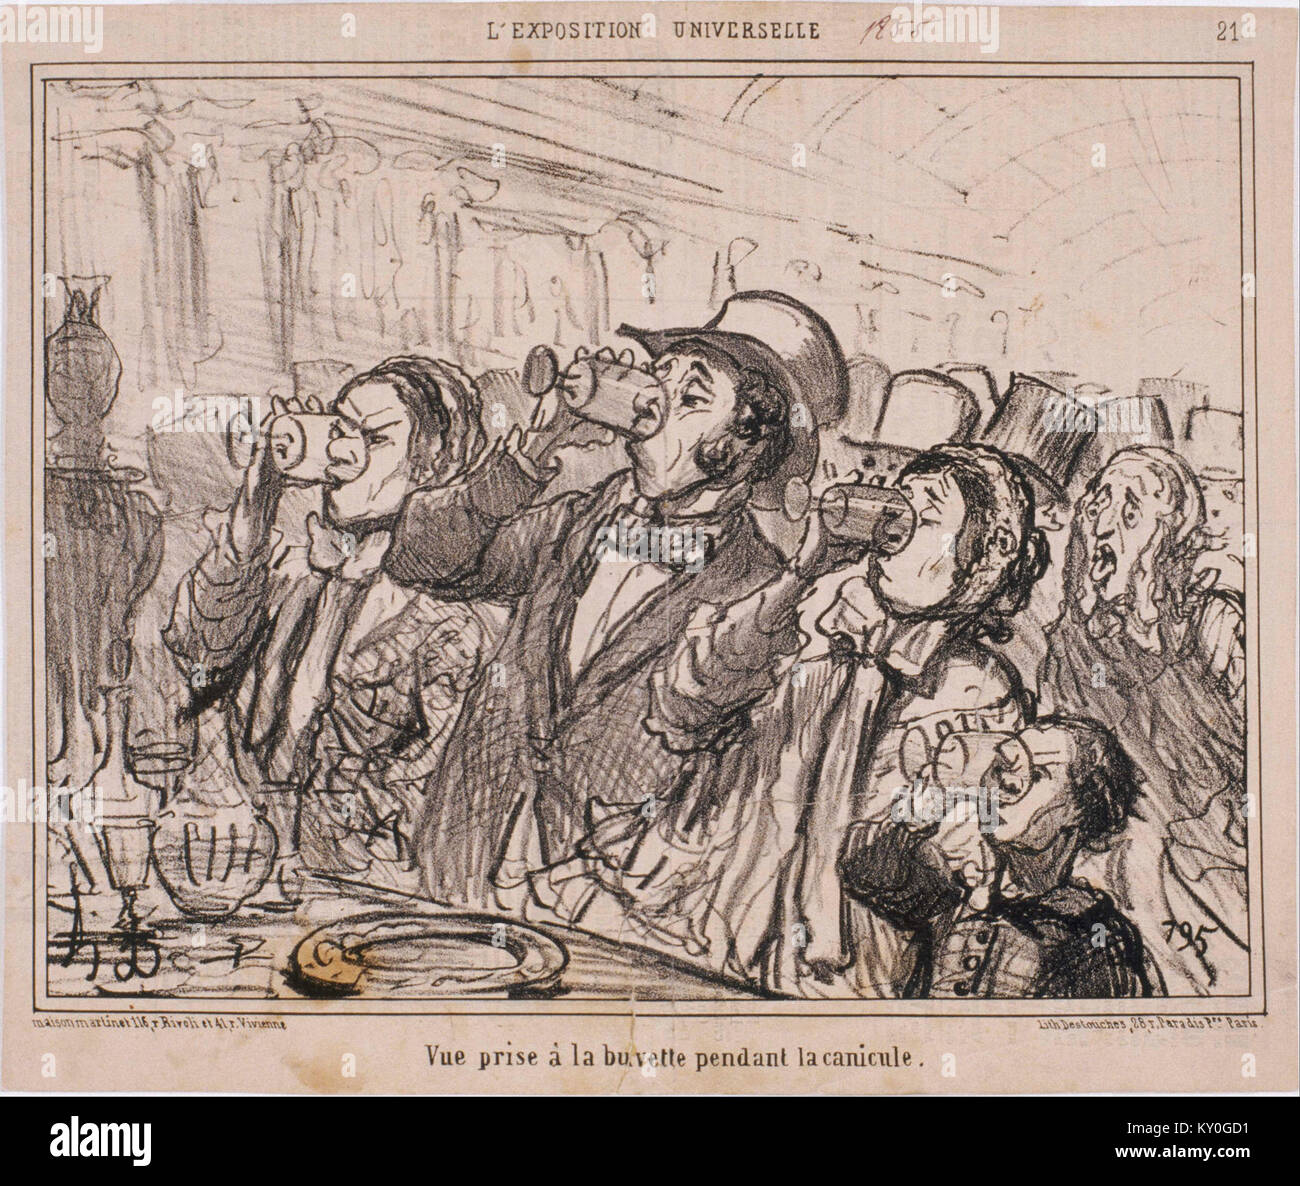 Category:Le Ventre Législatif by Honoré Daumier